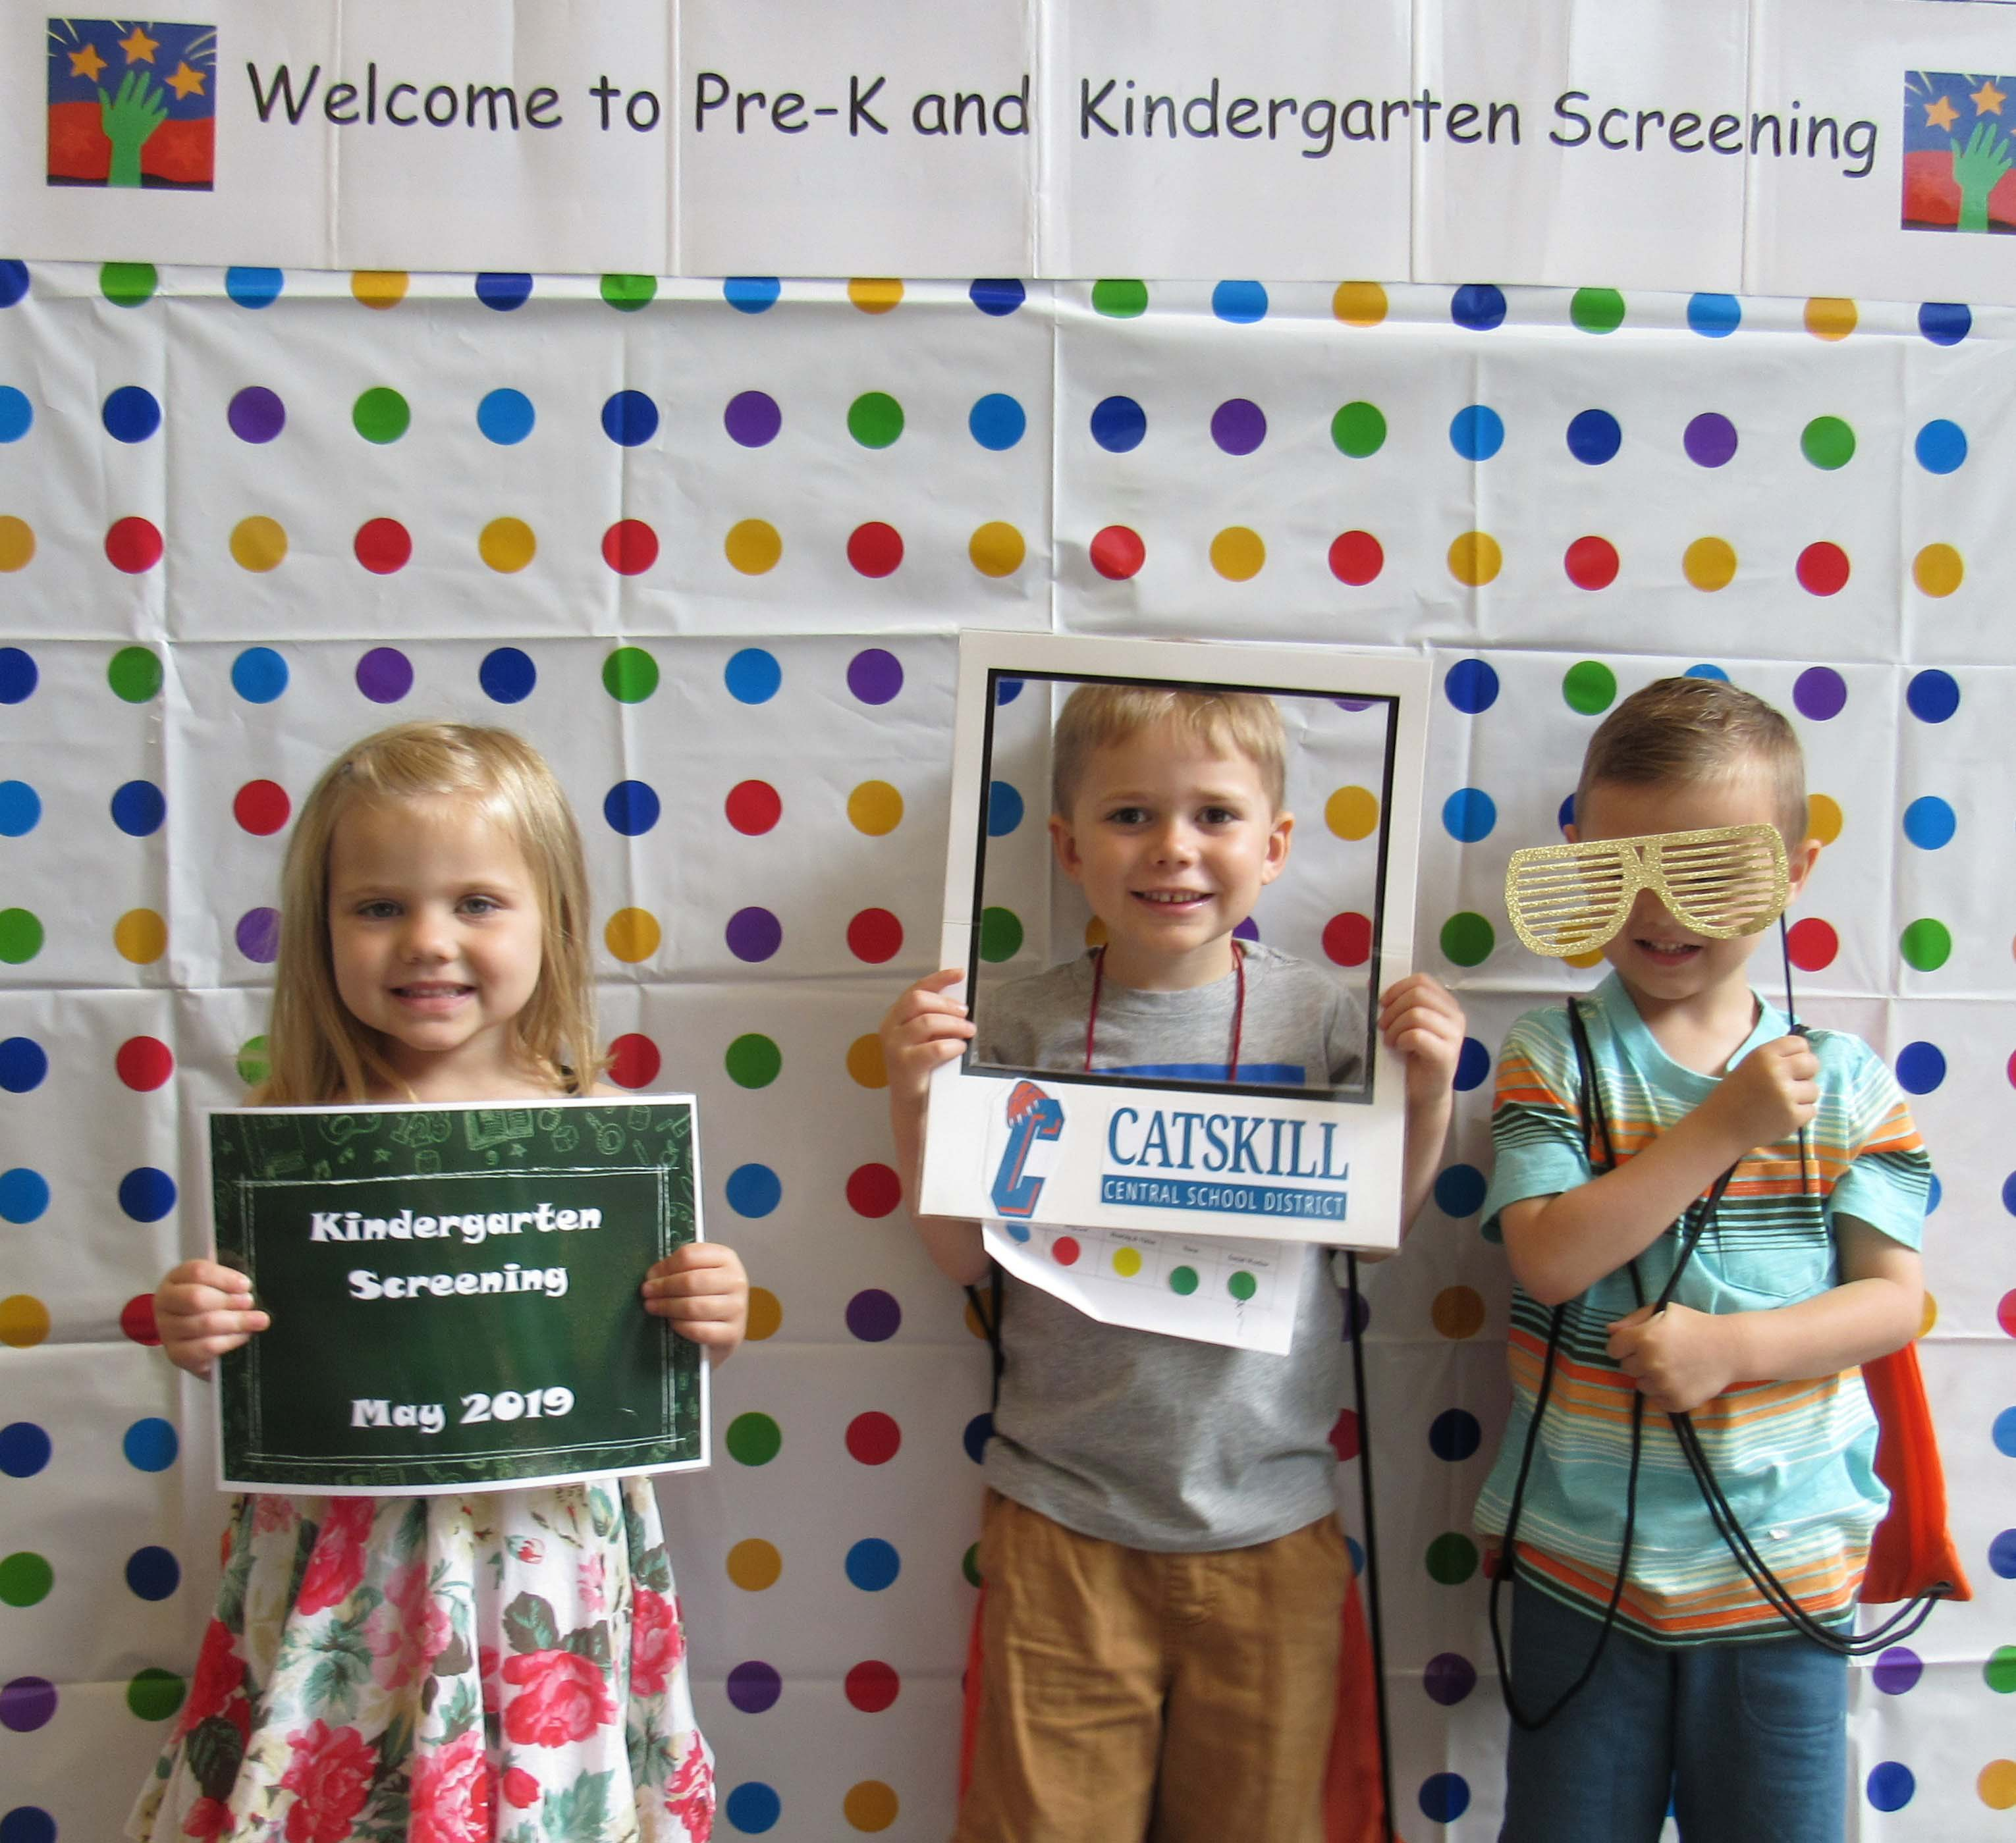 one girl and two boys pose with sign, frame, and silly glasses